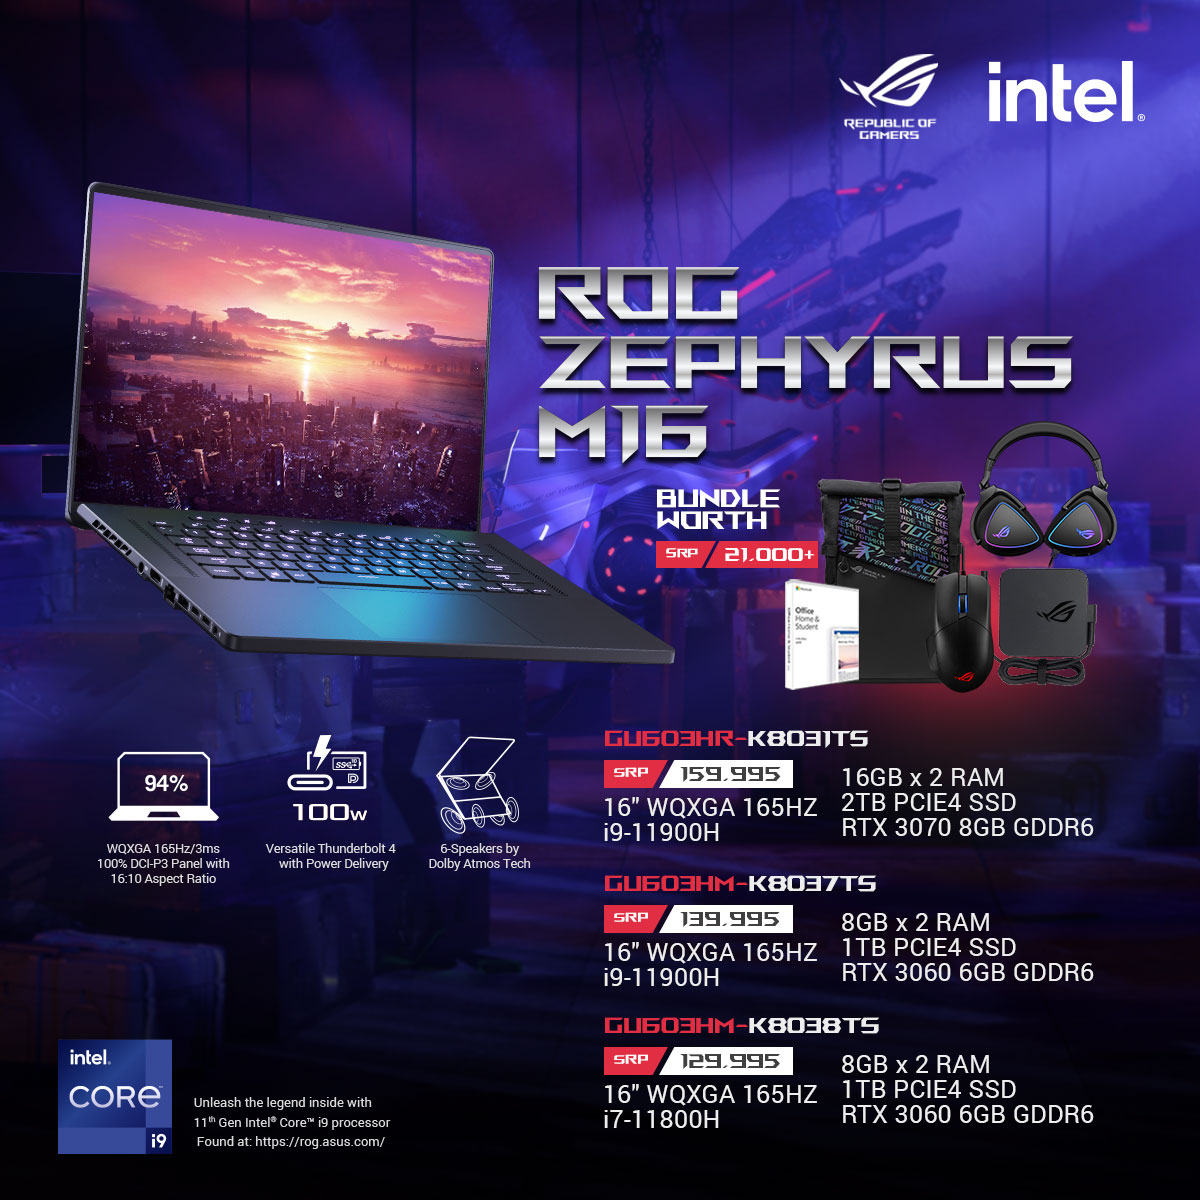 ROG Zephyrus M16 Key Features and Price